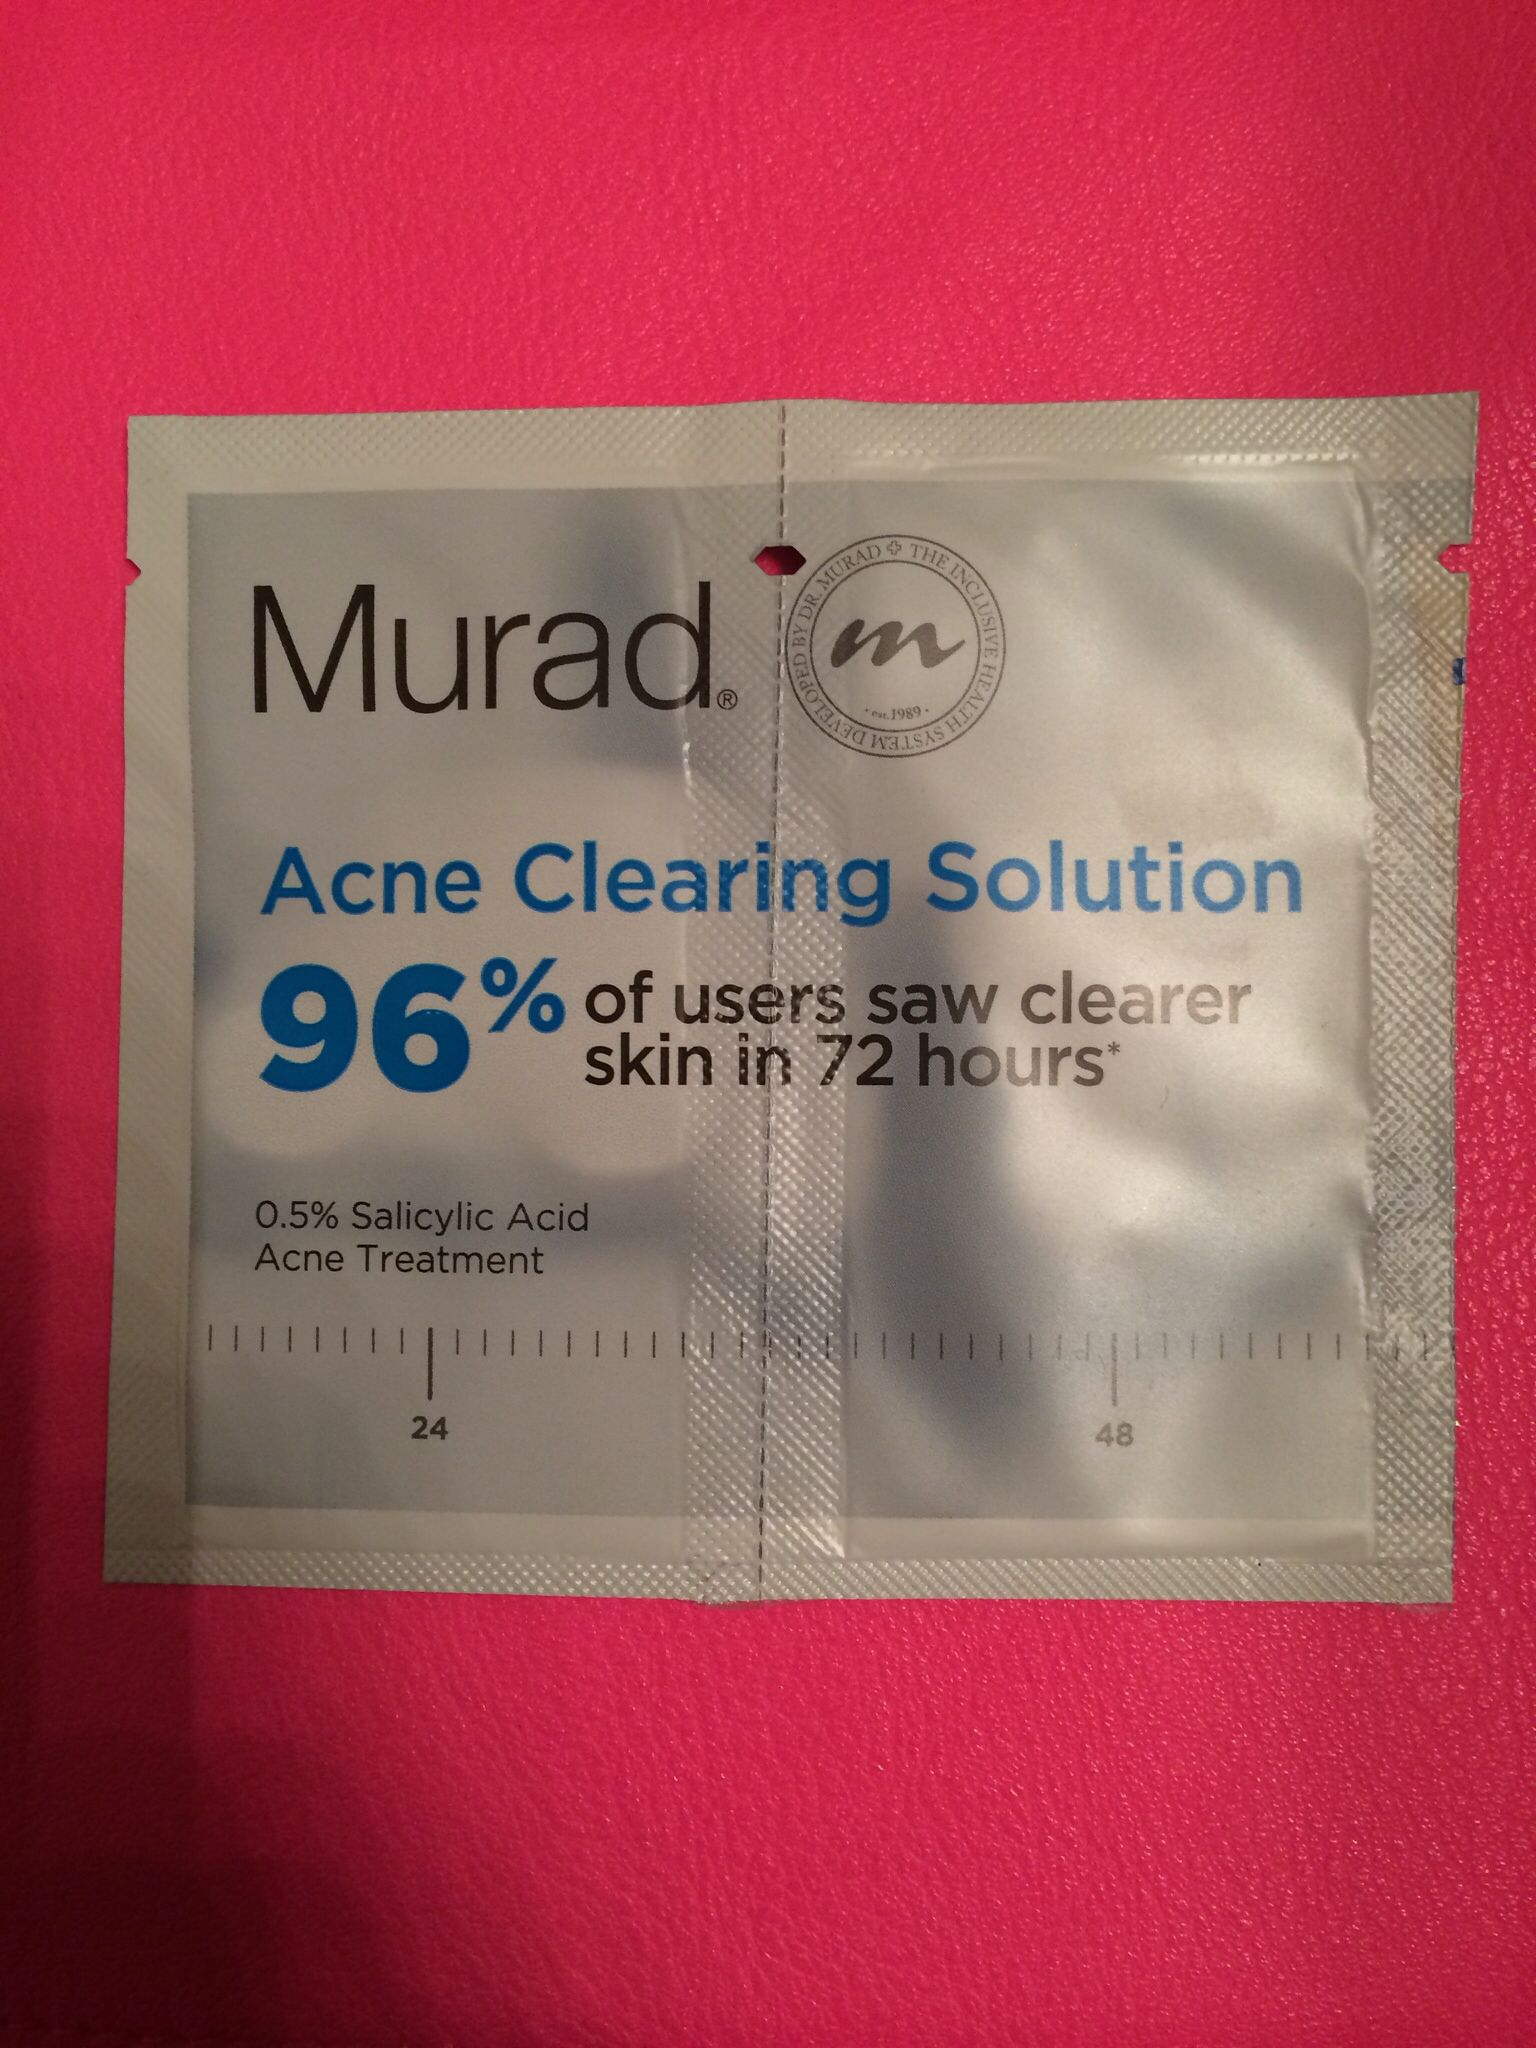 Murad acne clearing solution samples (2)